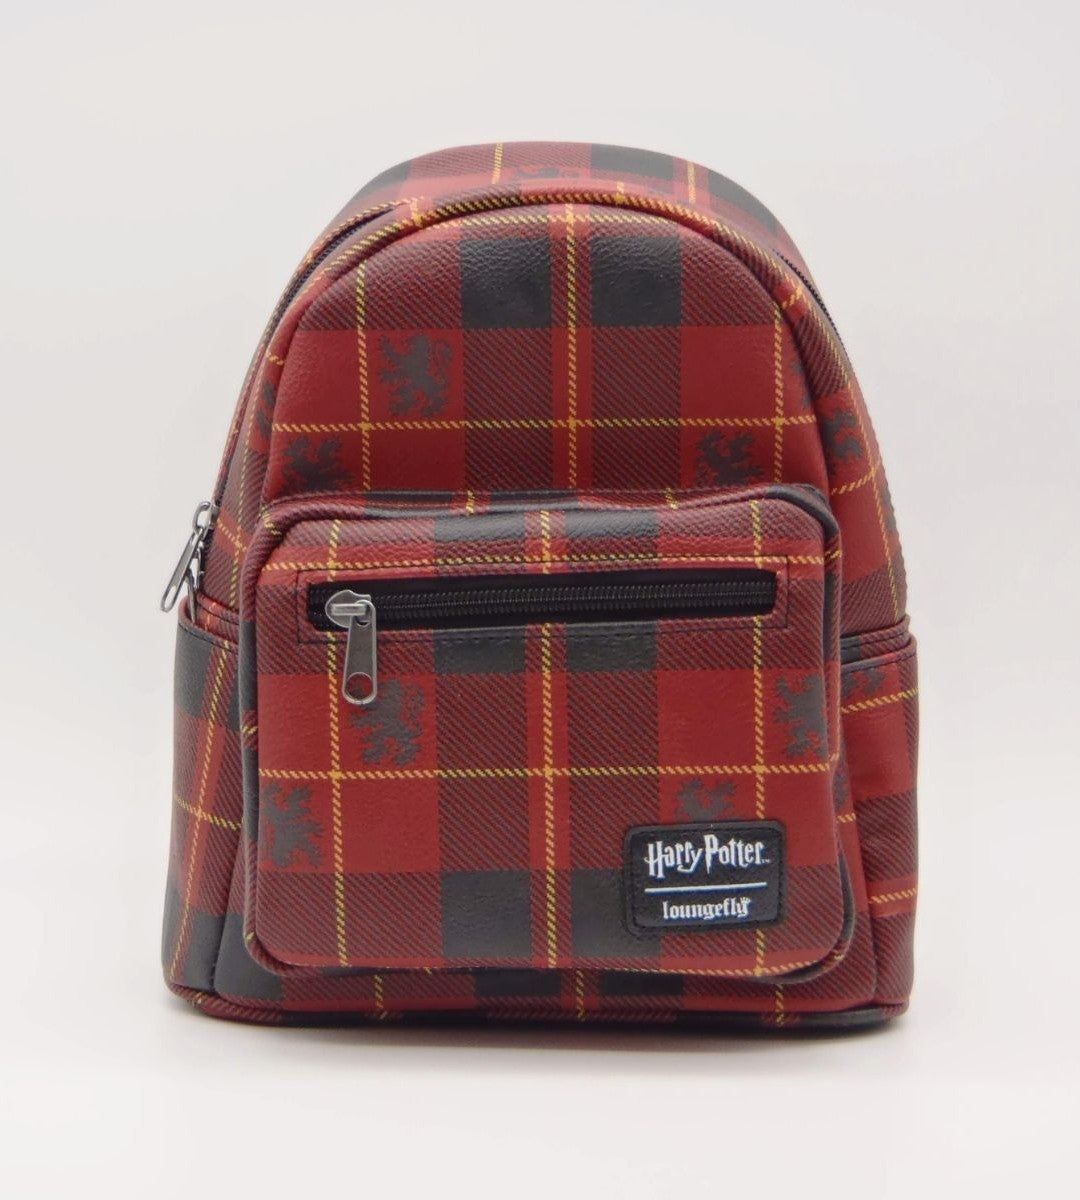 Loungefly harry potter gryffindor plaid mini backpack f4